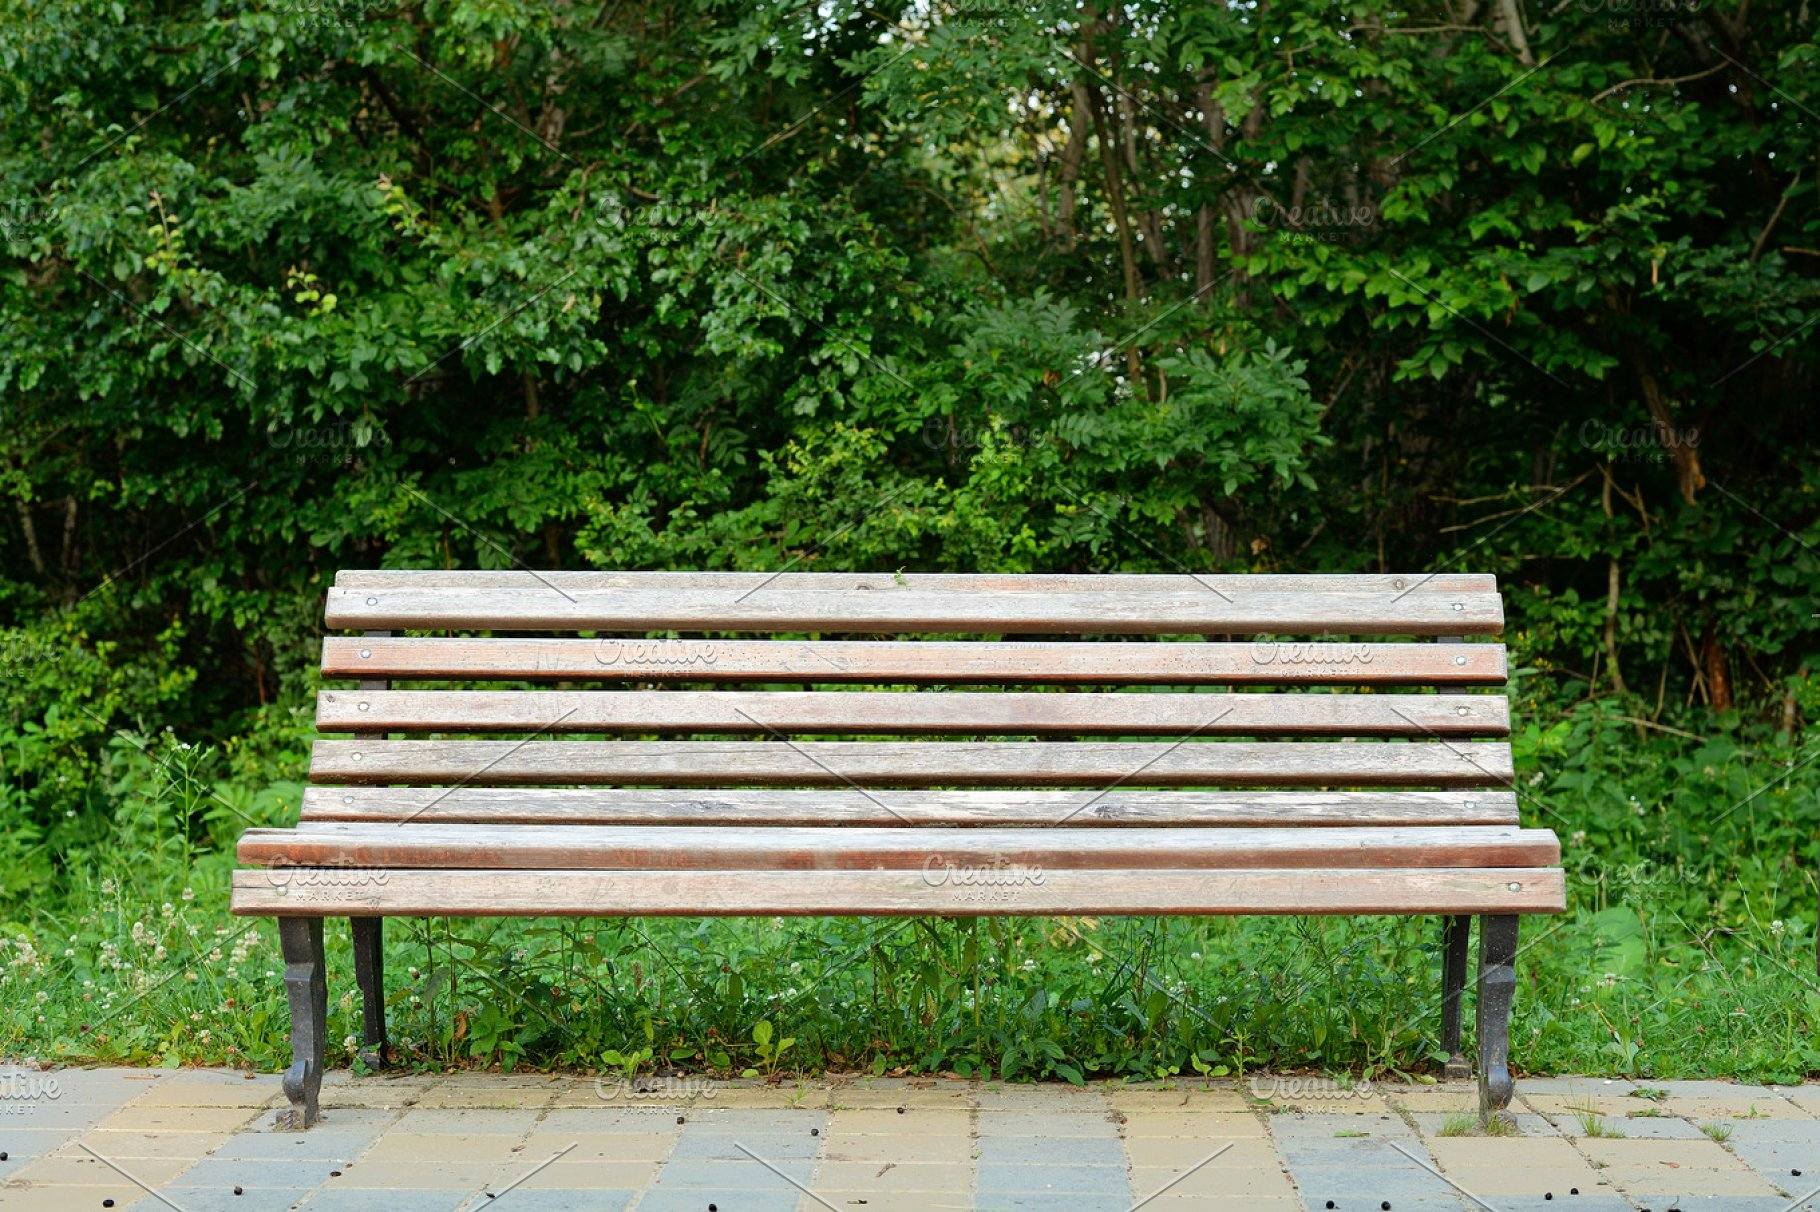 Old Wooden Bench In Park Nature Photos Creative Market